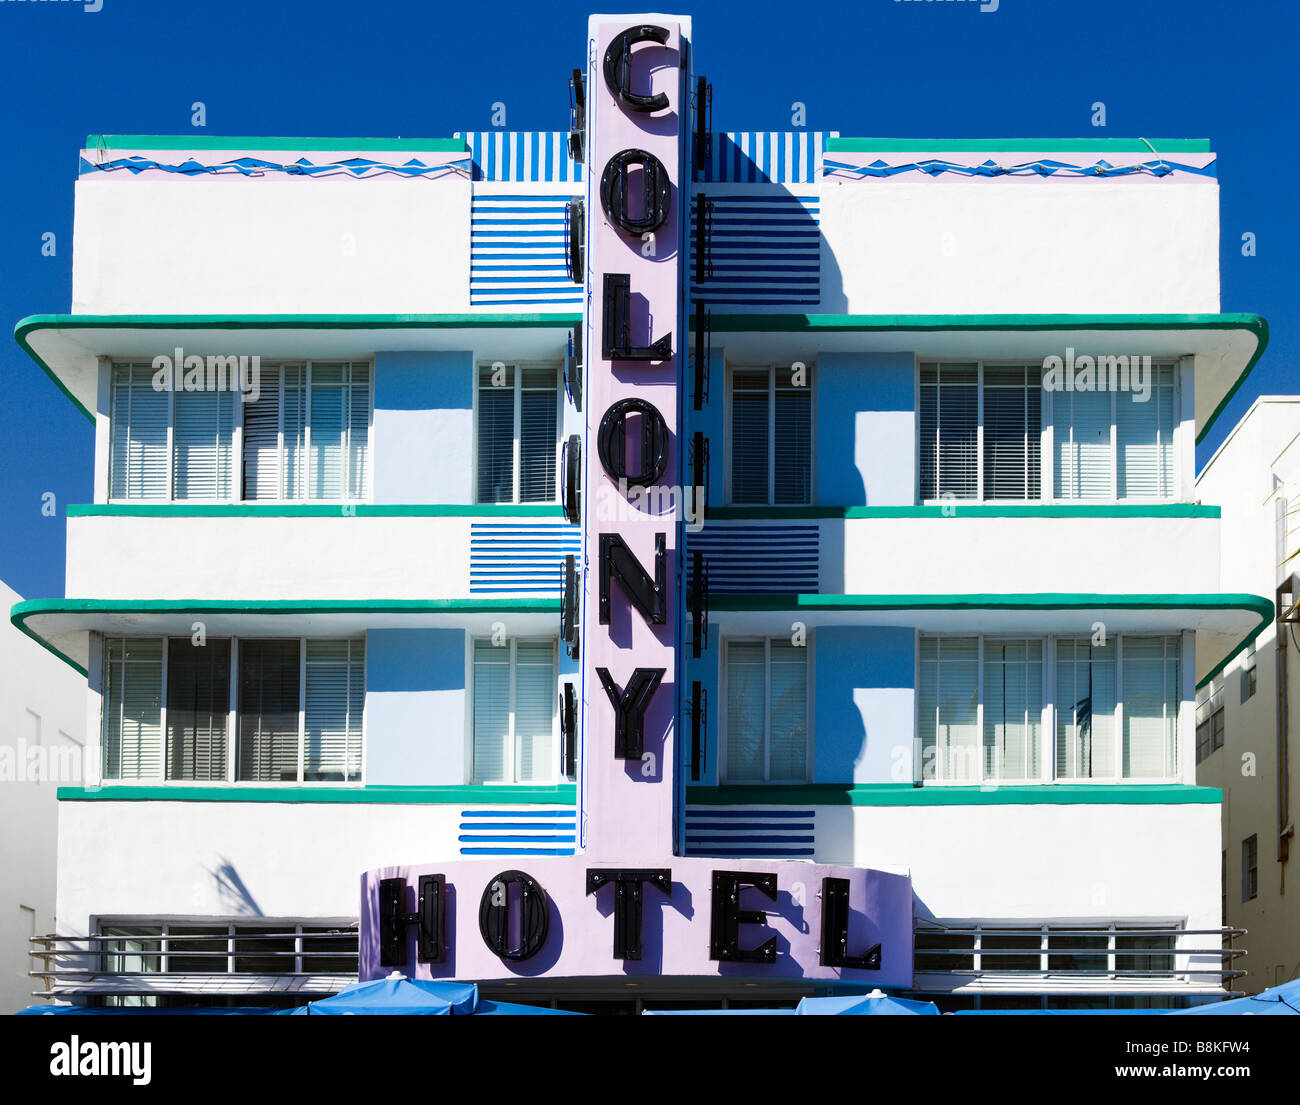 The facade of the art deco Colony Hotel on Ocean Drive, South Beach, Miami Beach, Gold Coast, Florida, USA - Stock Image